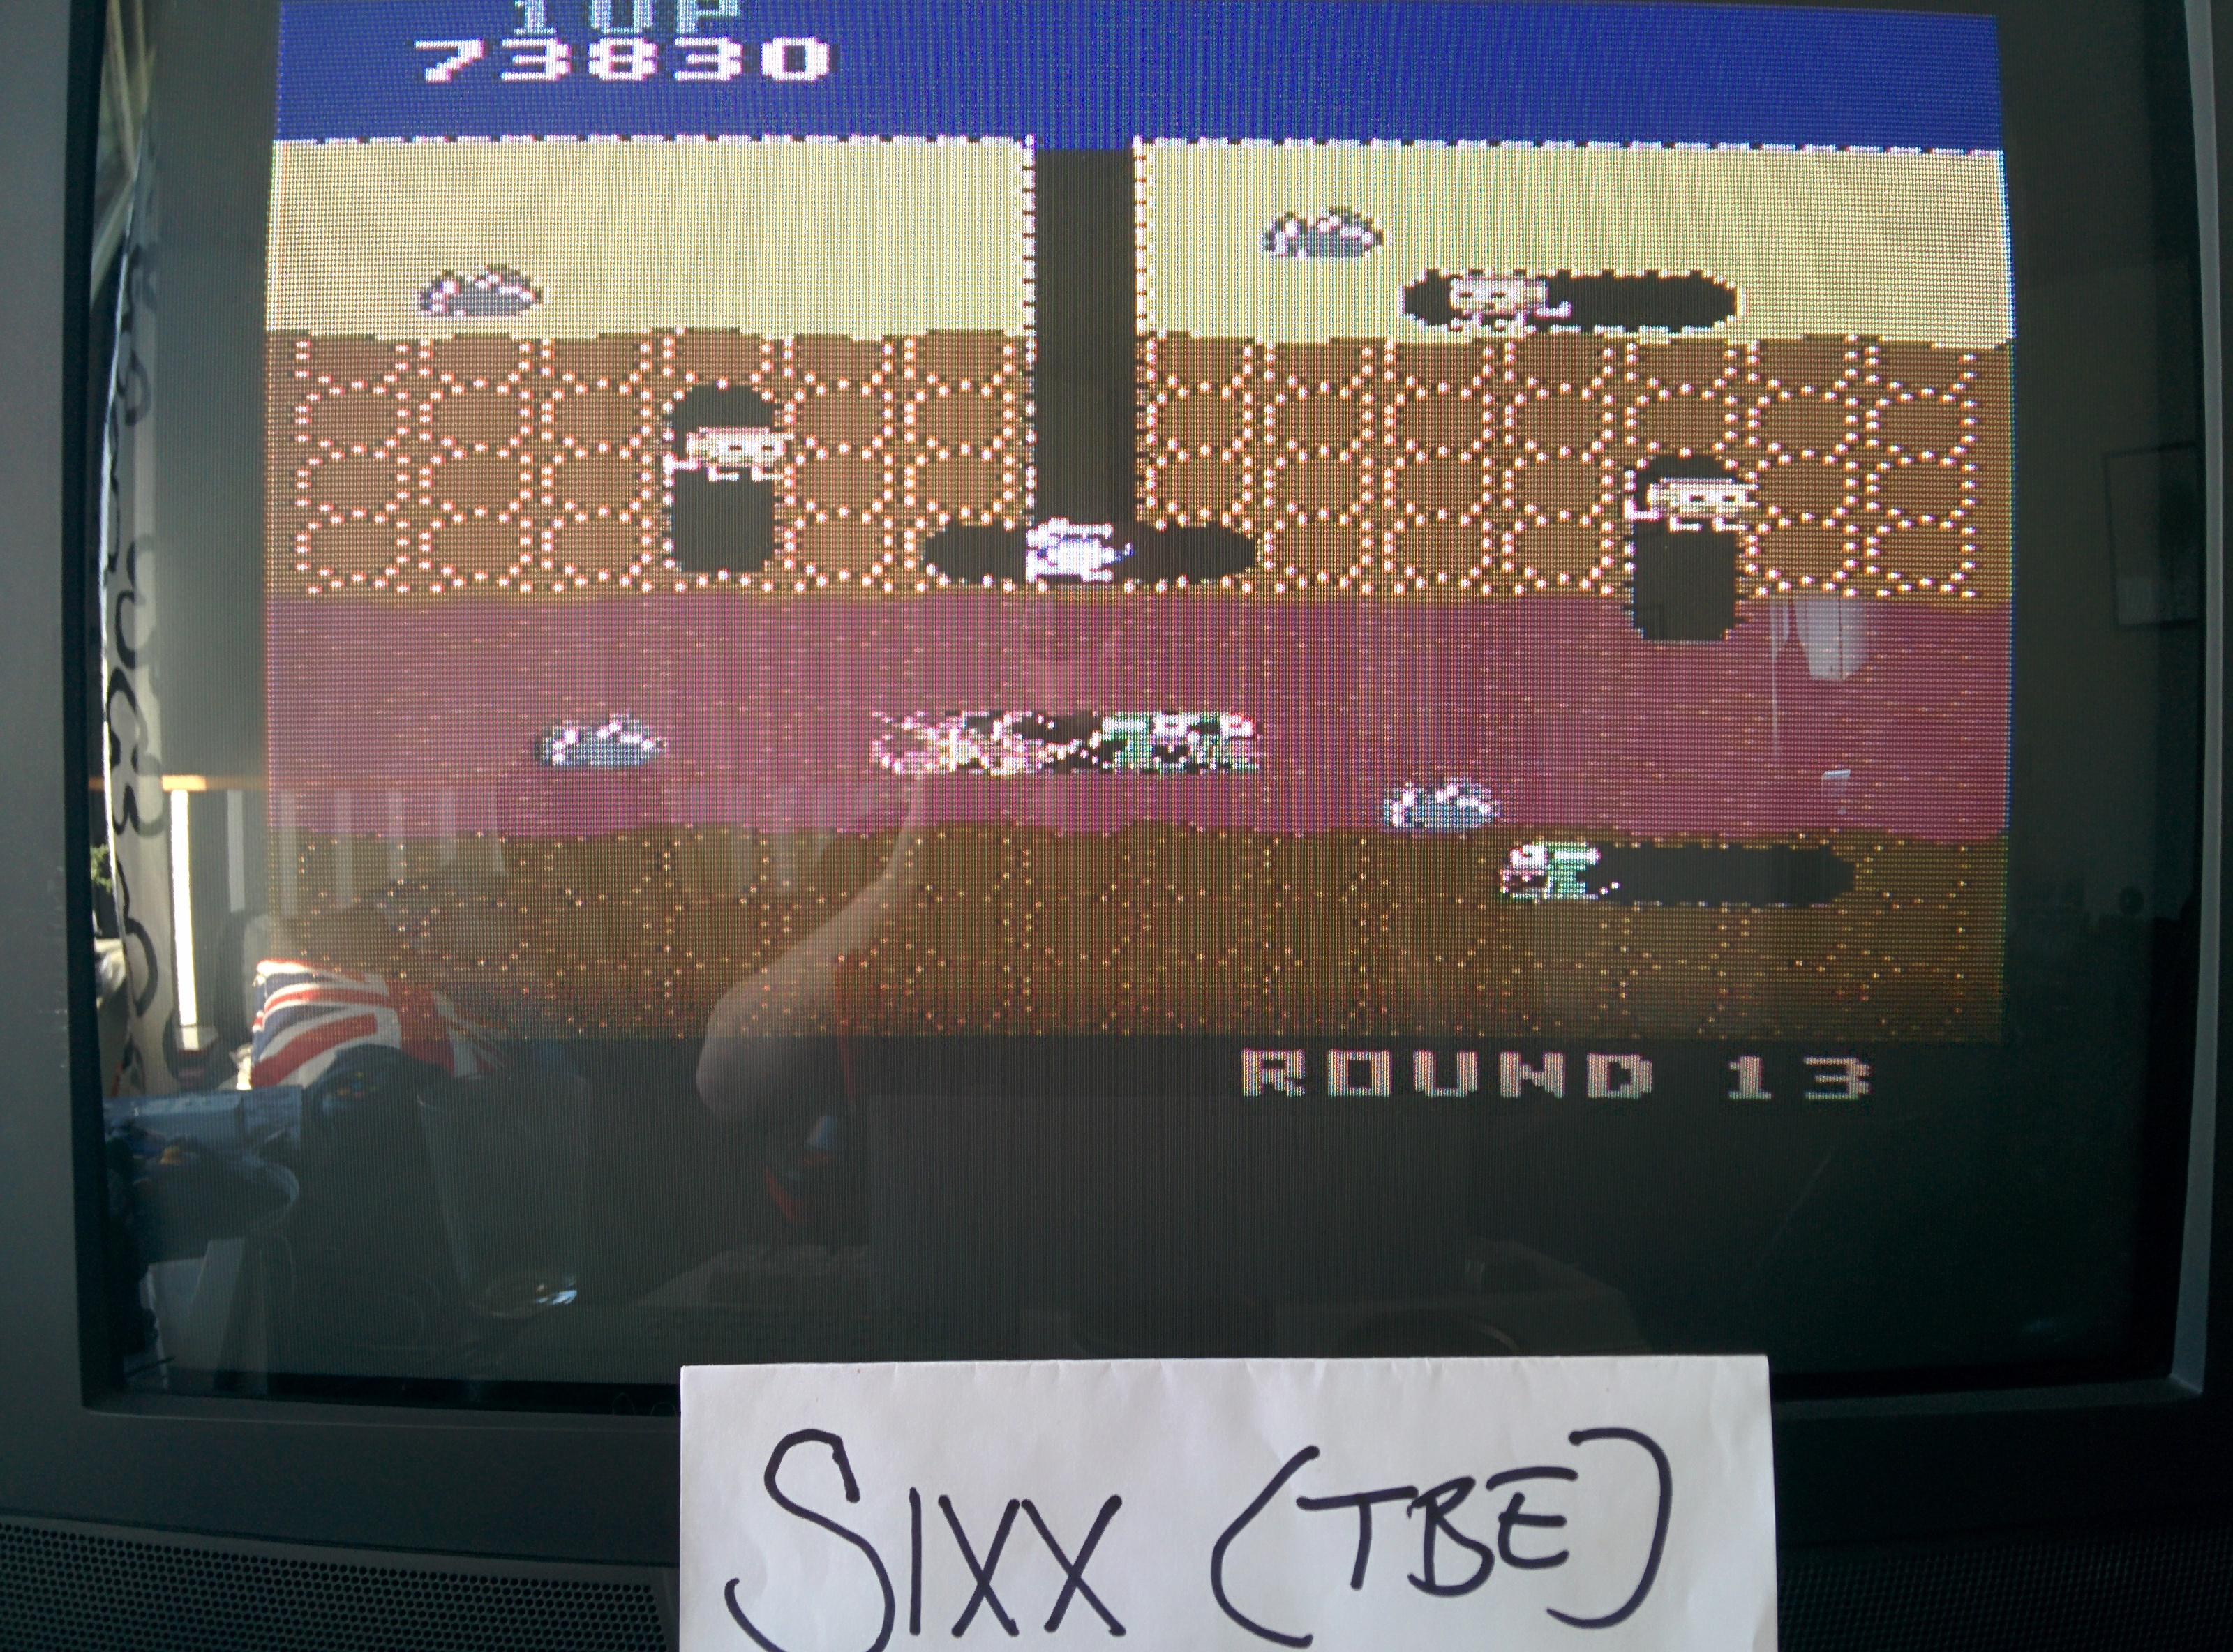 Sixx: Dig Dug (Commodore 64) 73,830 points on 2014-04-27 03:08:55